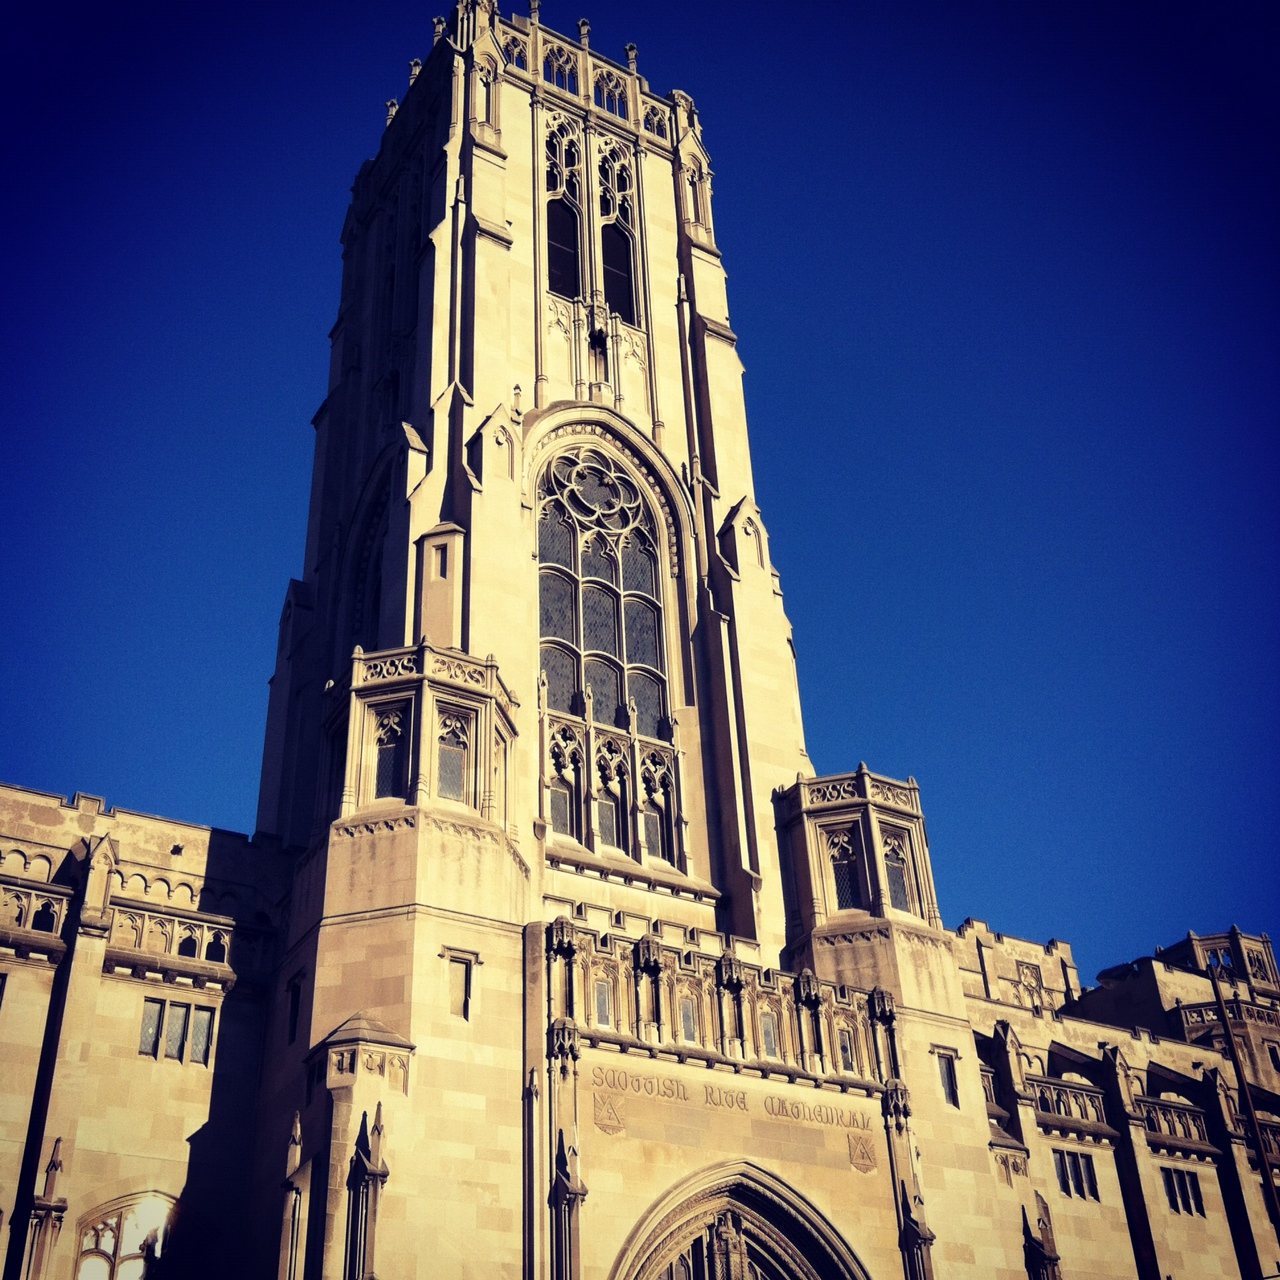 Friday Favorite: 6 Trivia Bits, Scottish Rite Cathedral